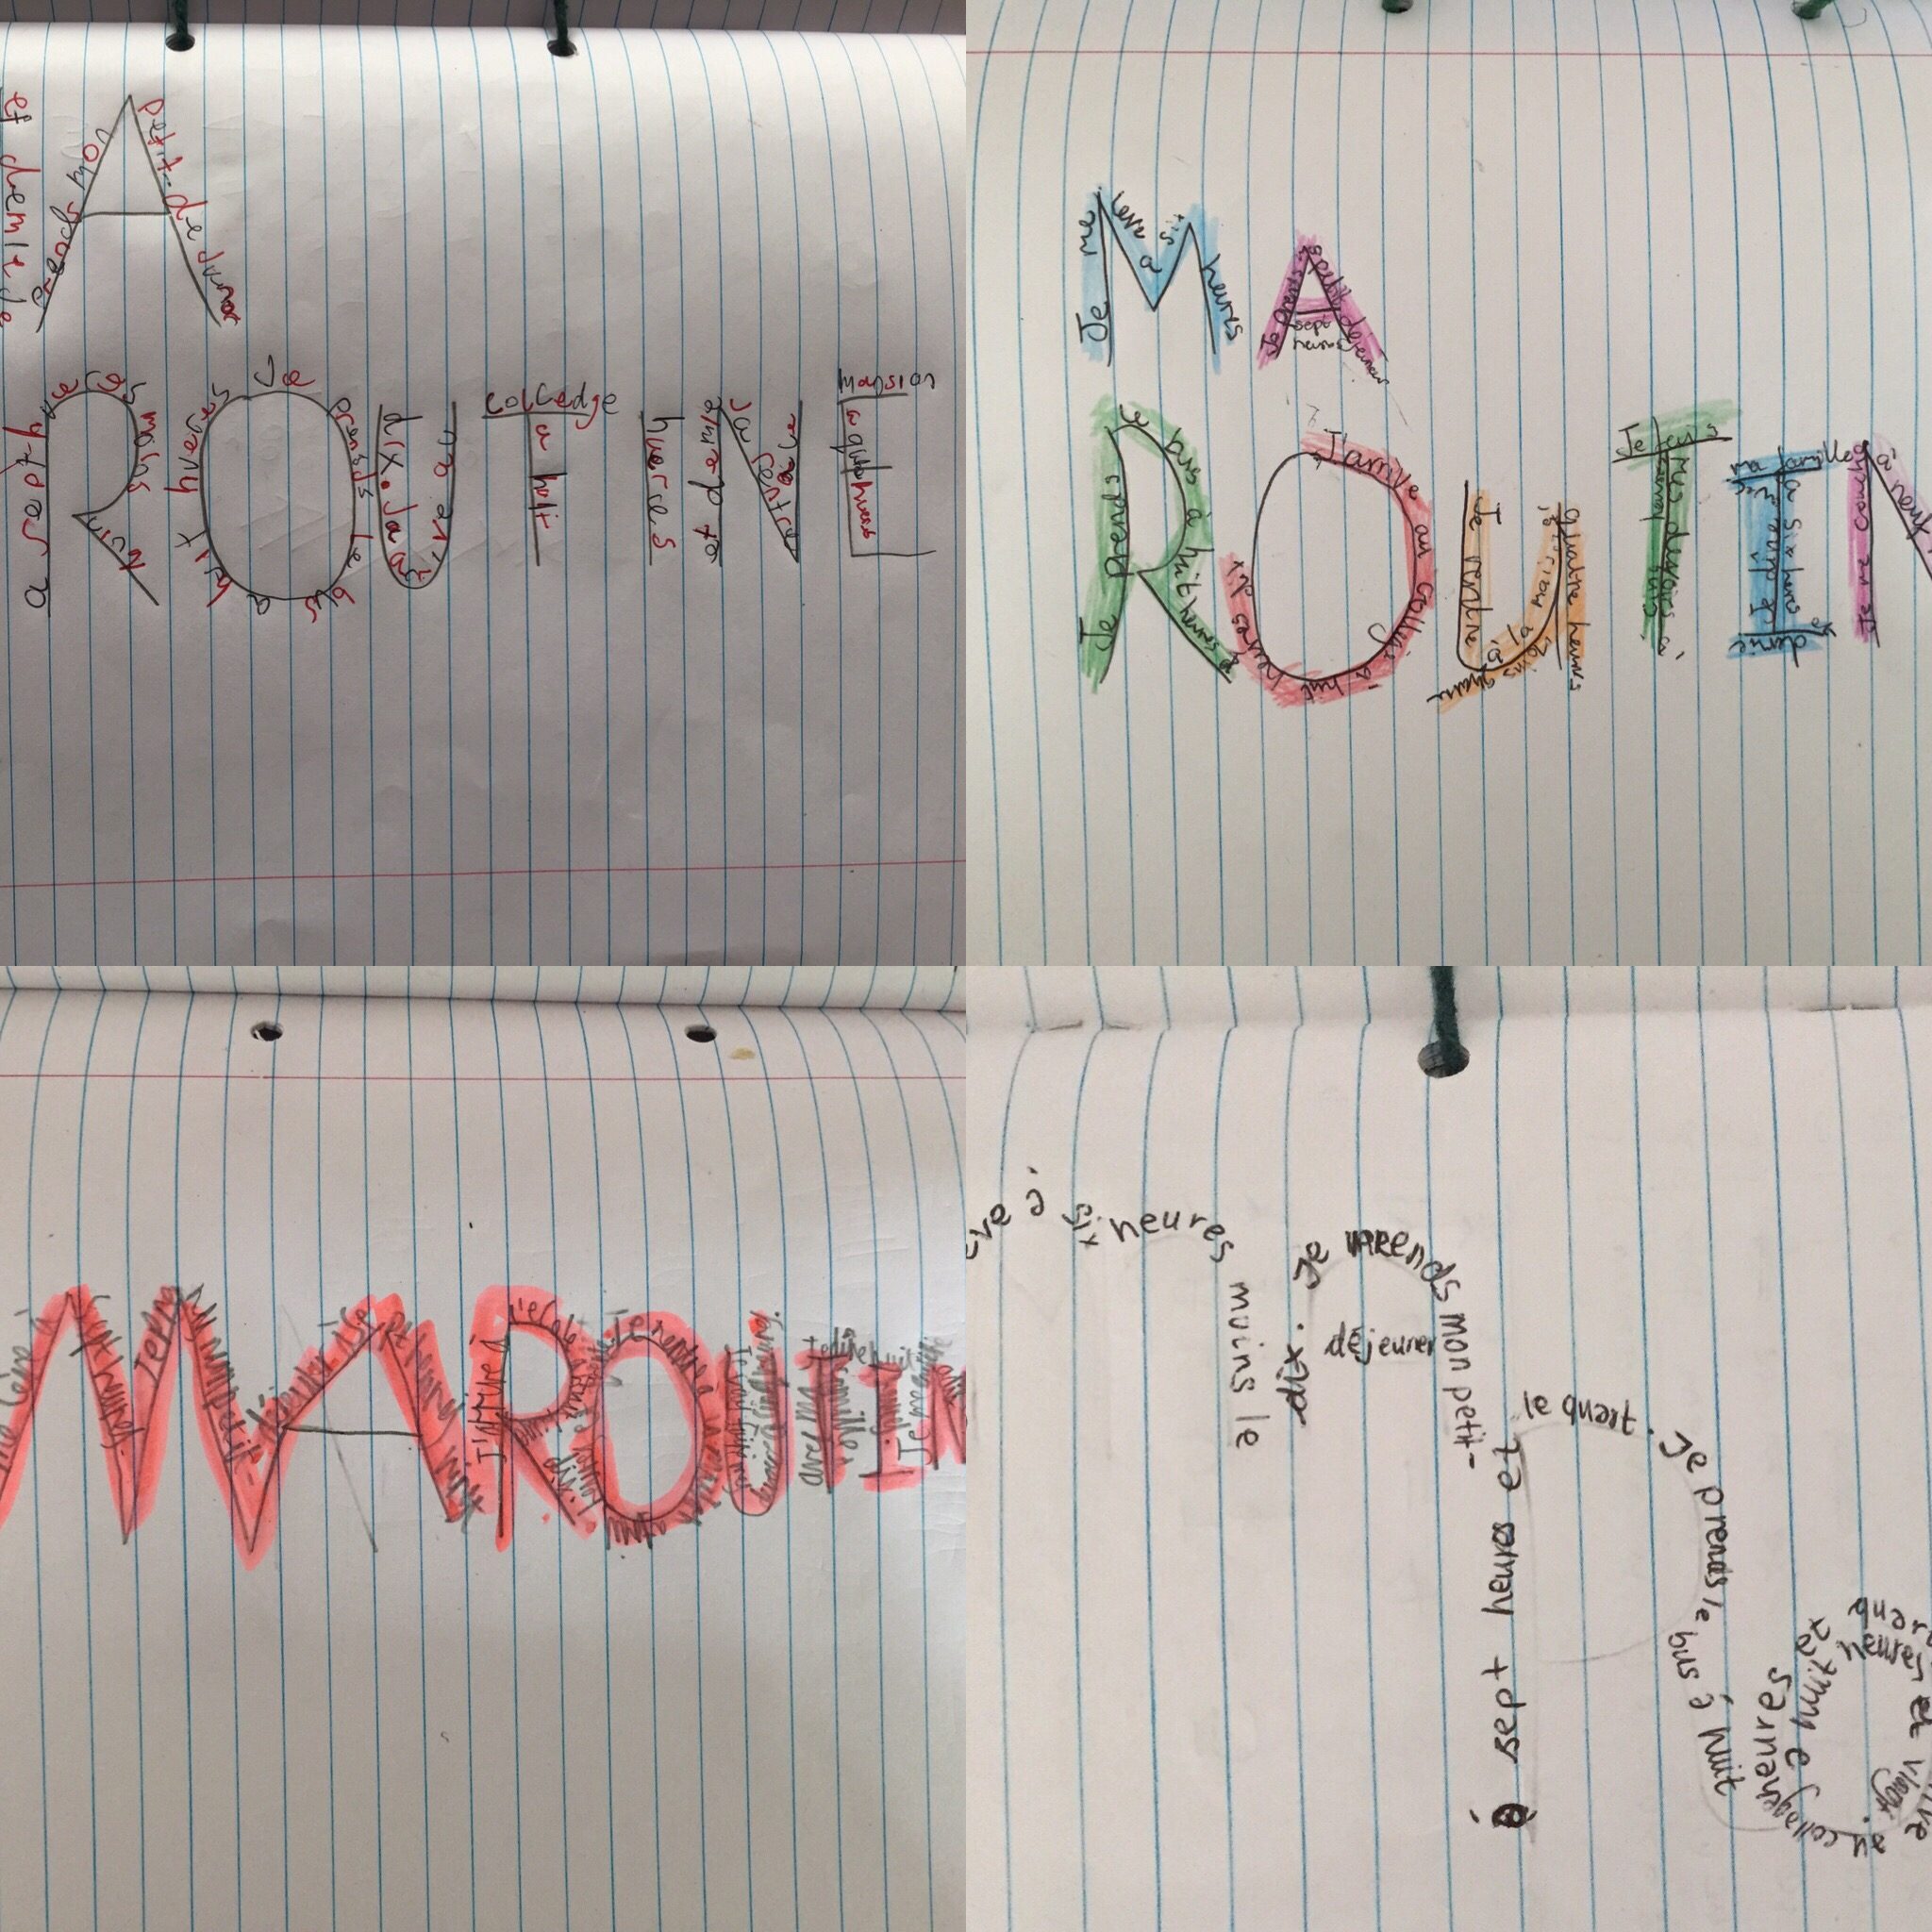 creative ways to practice writing letters